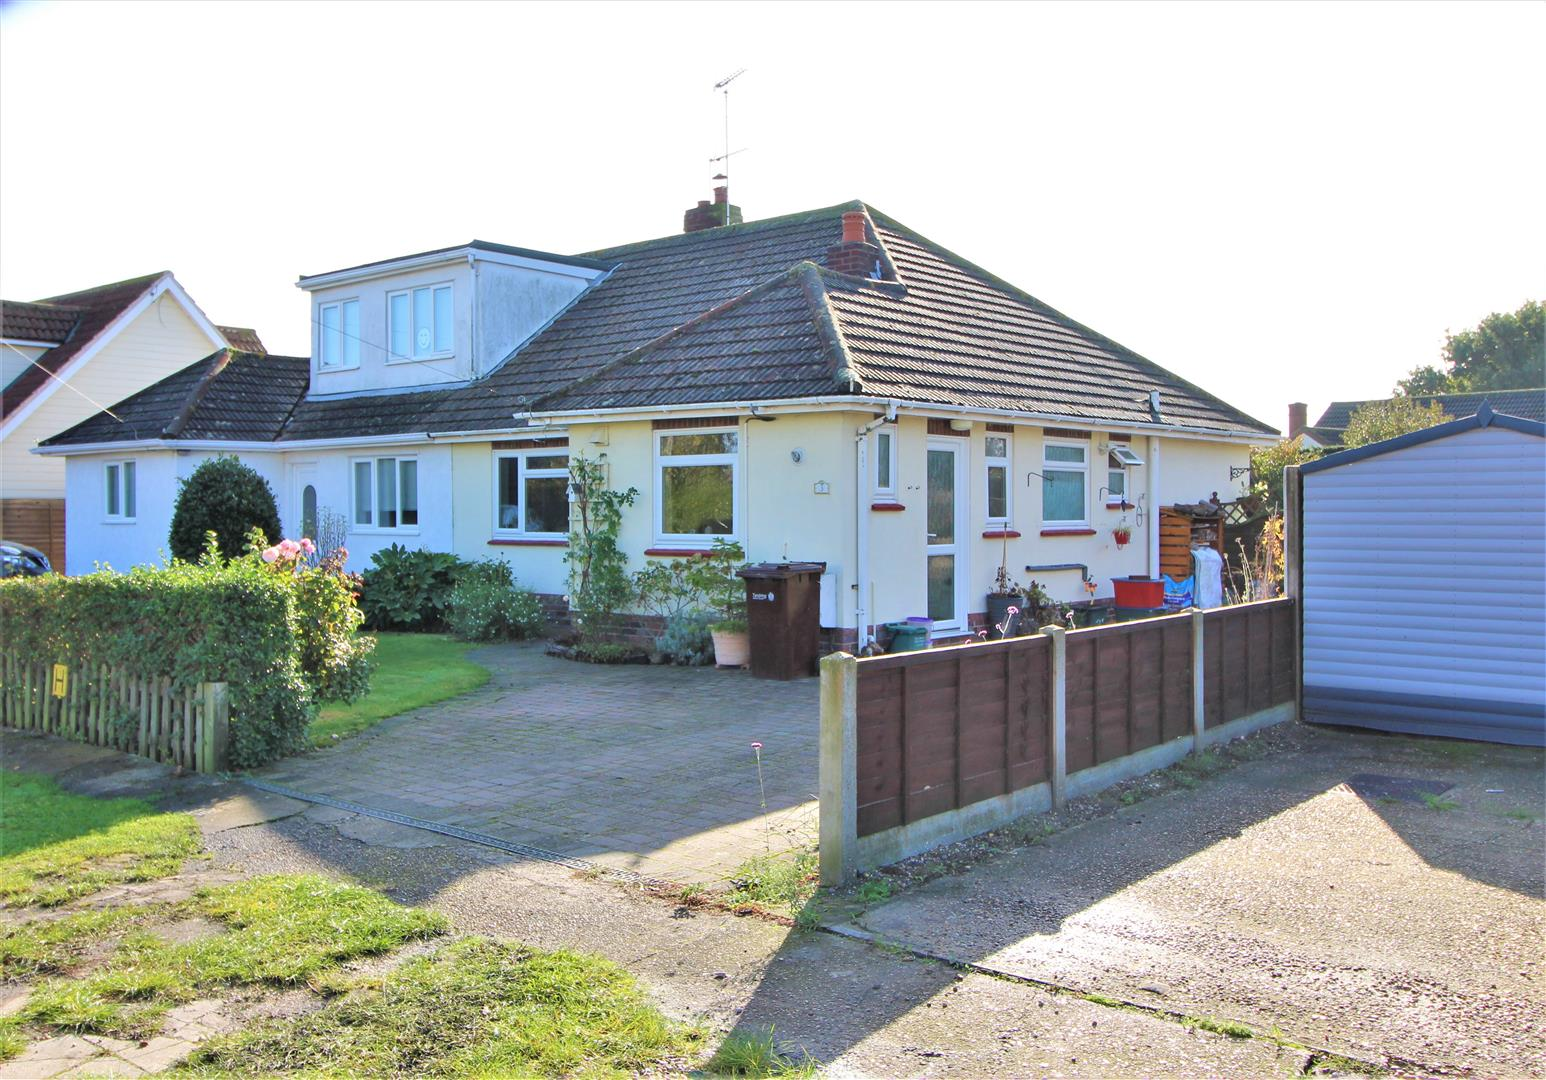 Percival Road, Kirby-Le-Soken, Essex, CO13 0DL